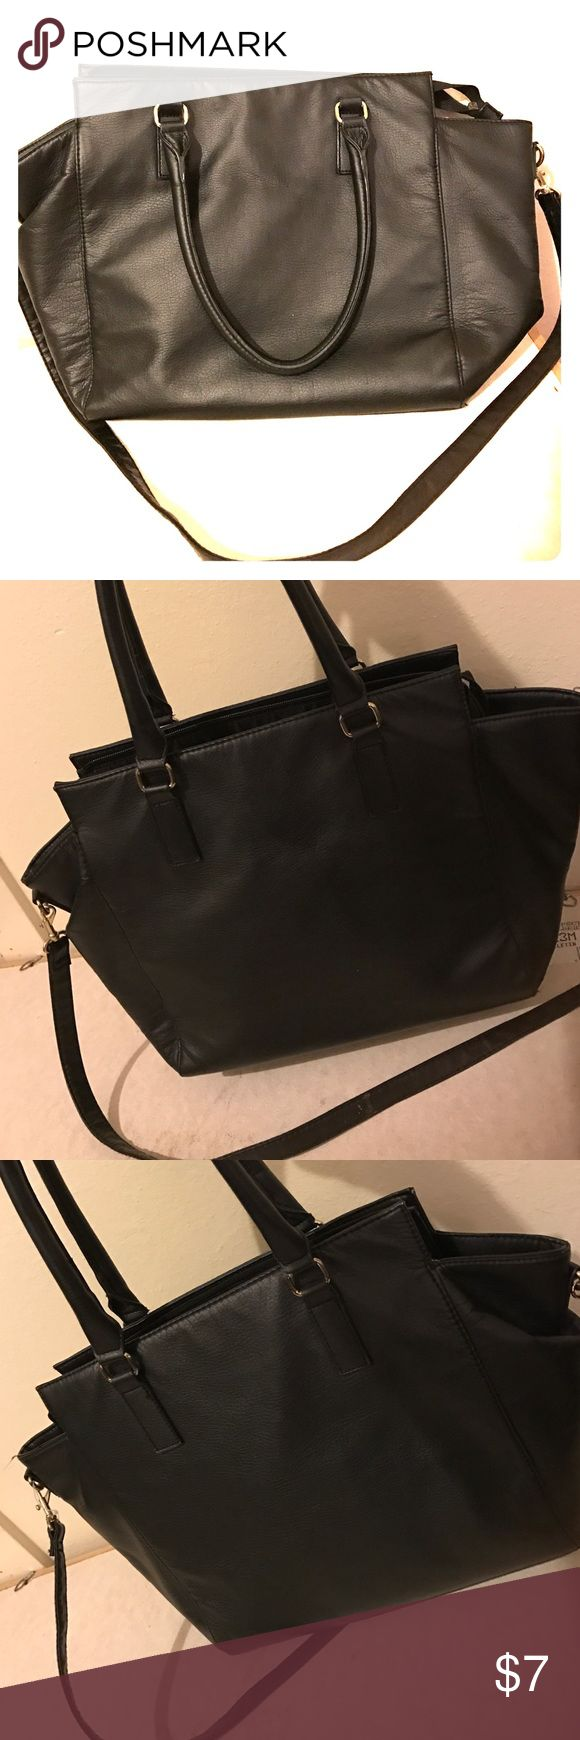 H&M Purse Black H&M purse. Super cute. Its still in really good condition. The inside could be wiped down or cleaned a bit (shown in picture) but other than that it's perfect! H&M Bags Crossbody Bags